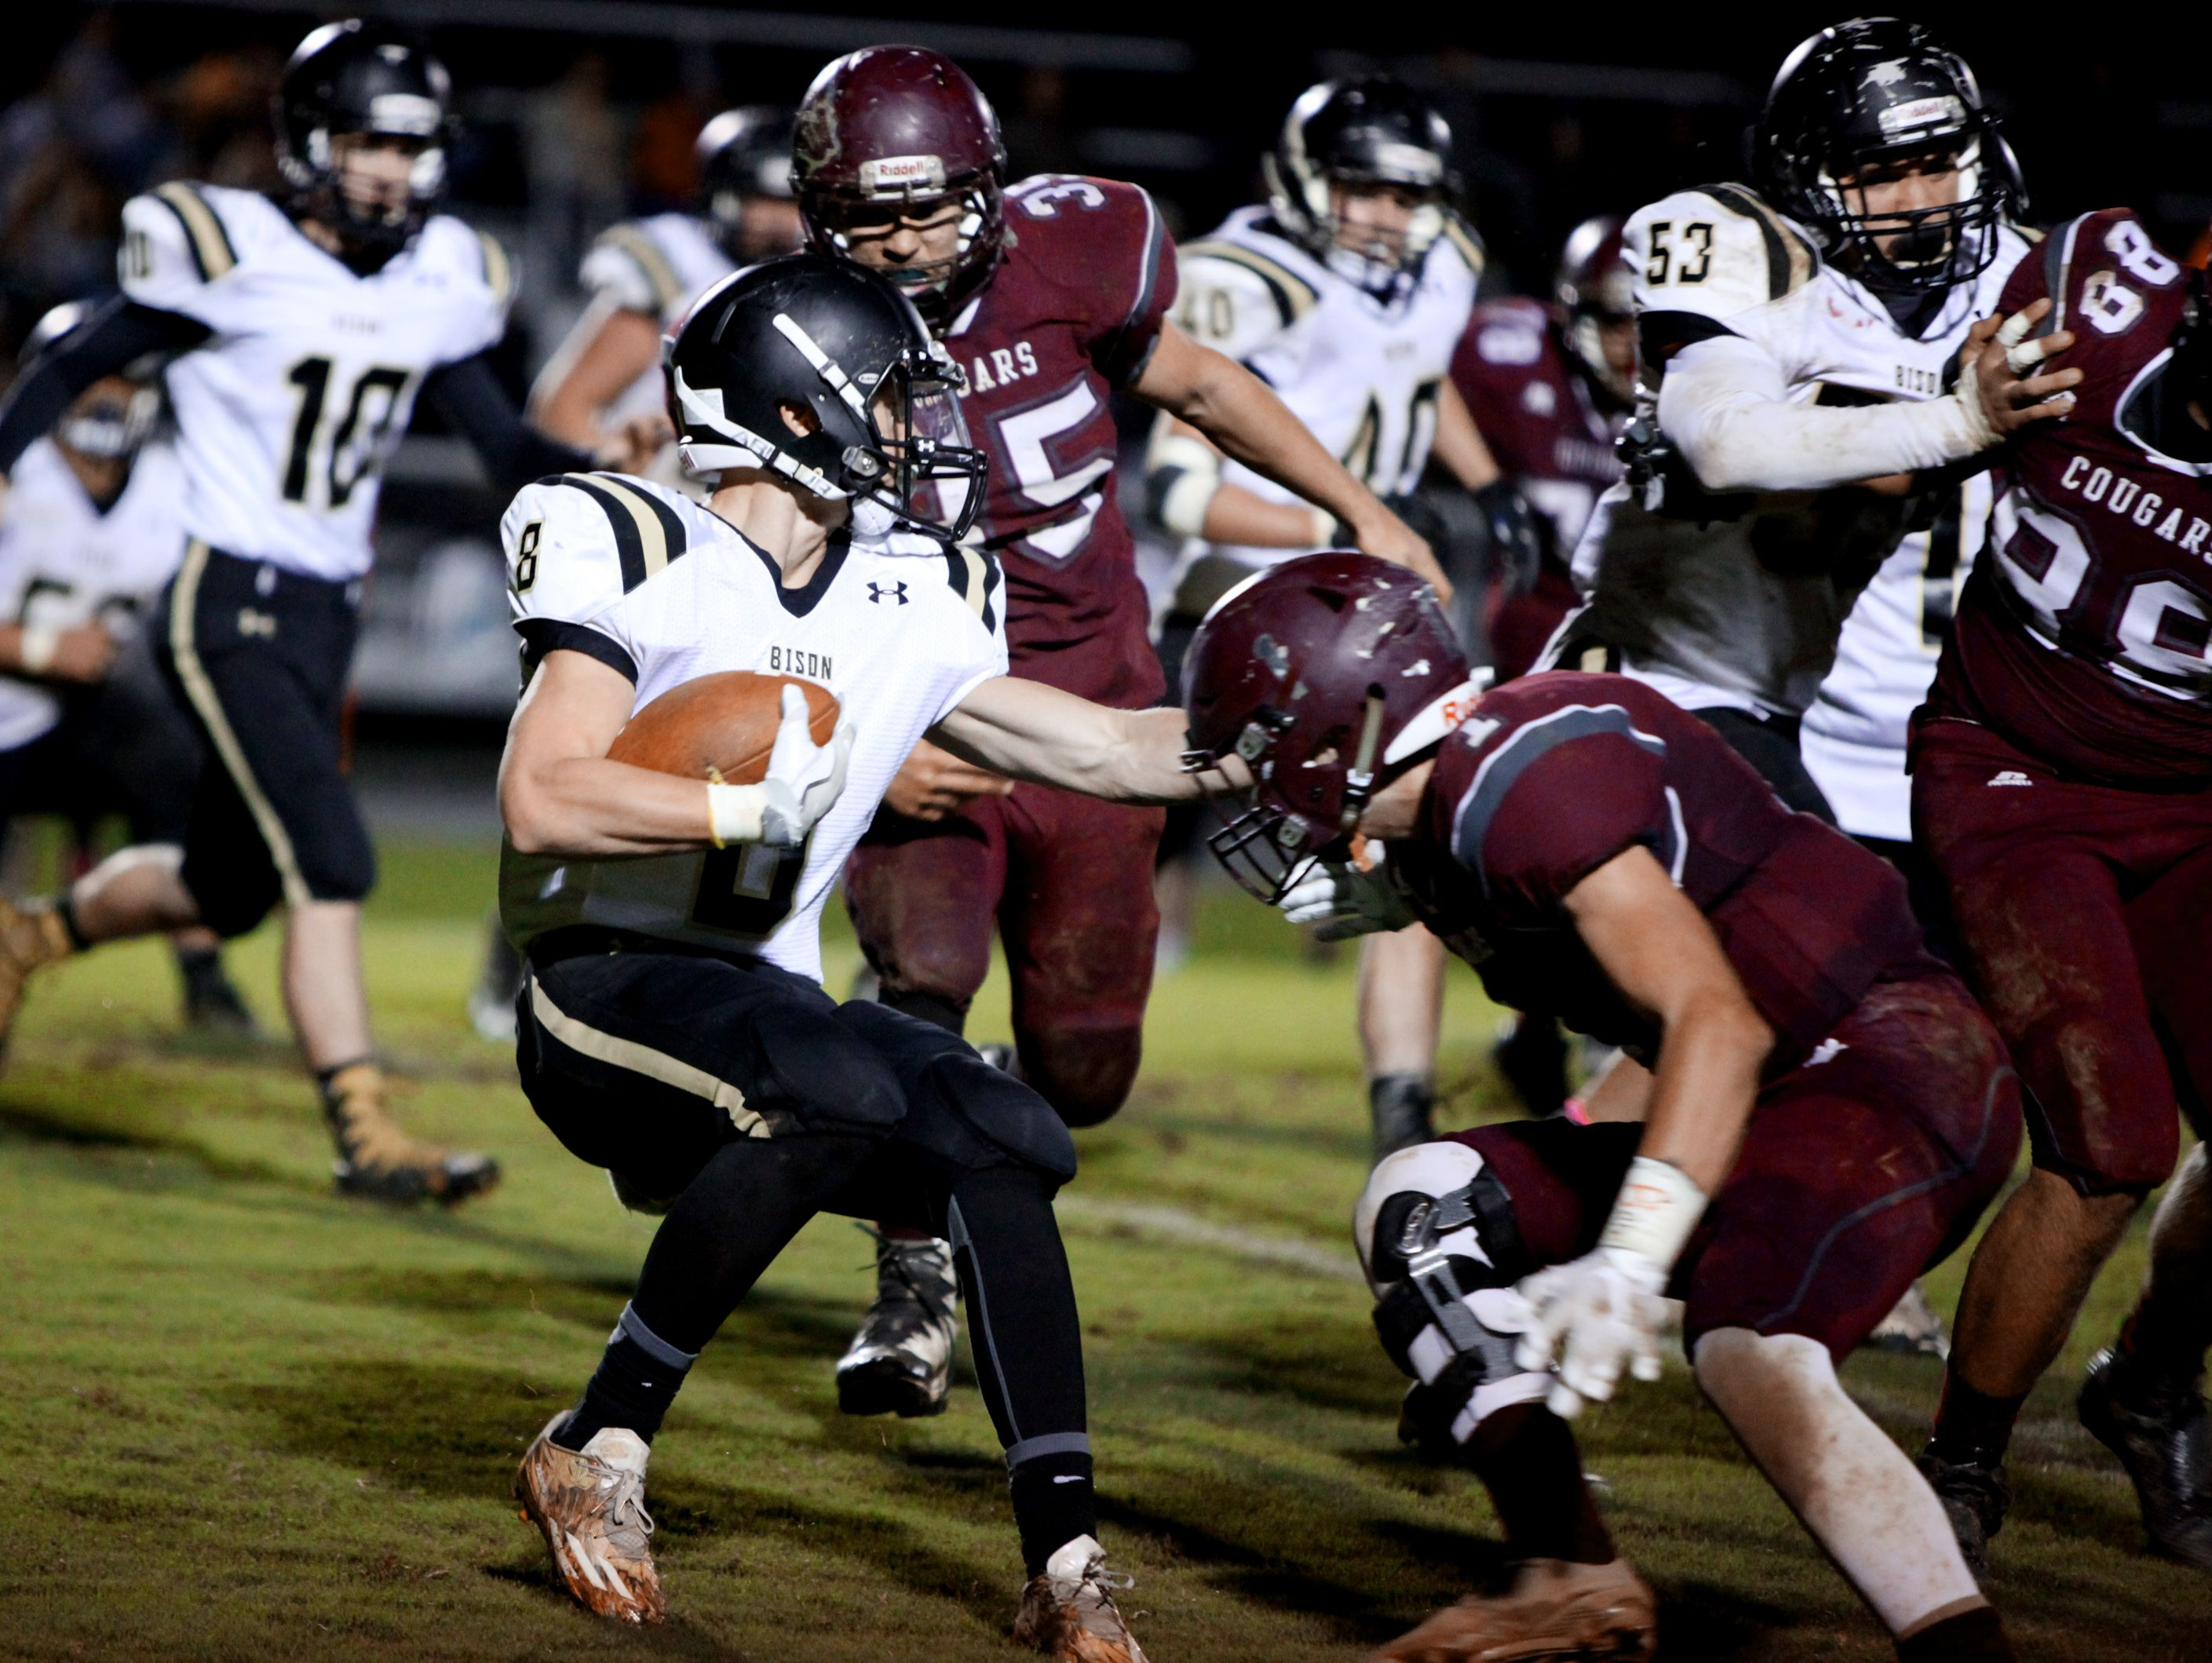 Buffalo Gap's Carter Rivenburg carries the ball during a play in the first half of the game in Stuarts Draft on Monday, Oct. 10, 2016, which was rescheduled due to rain last Friday.